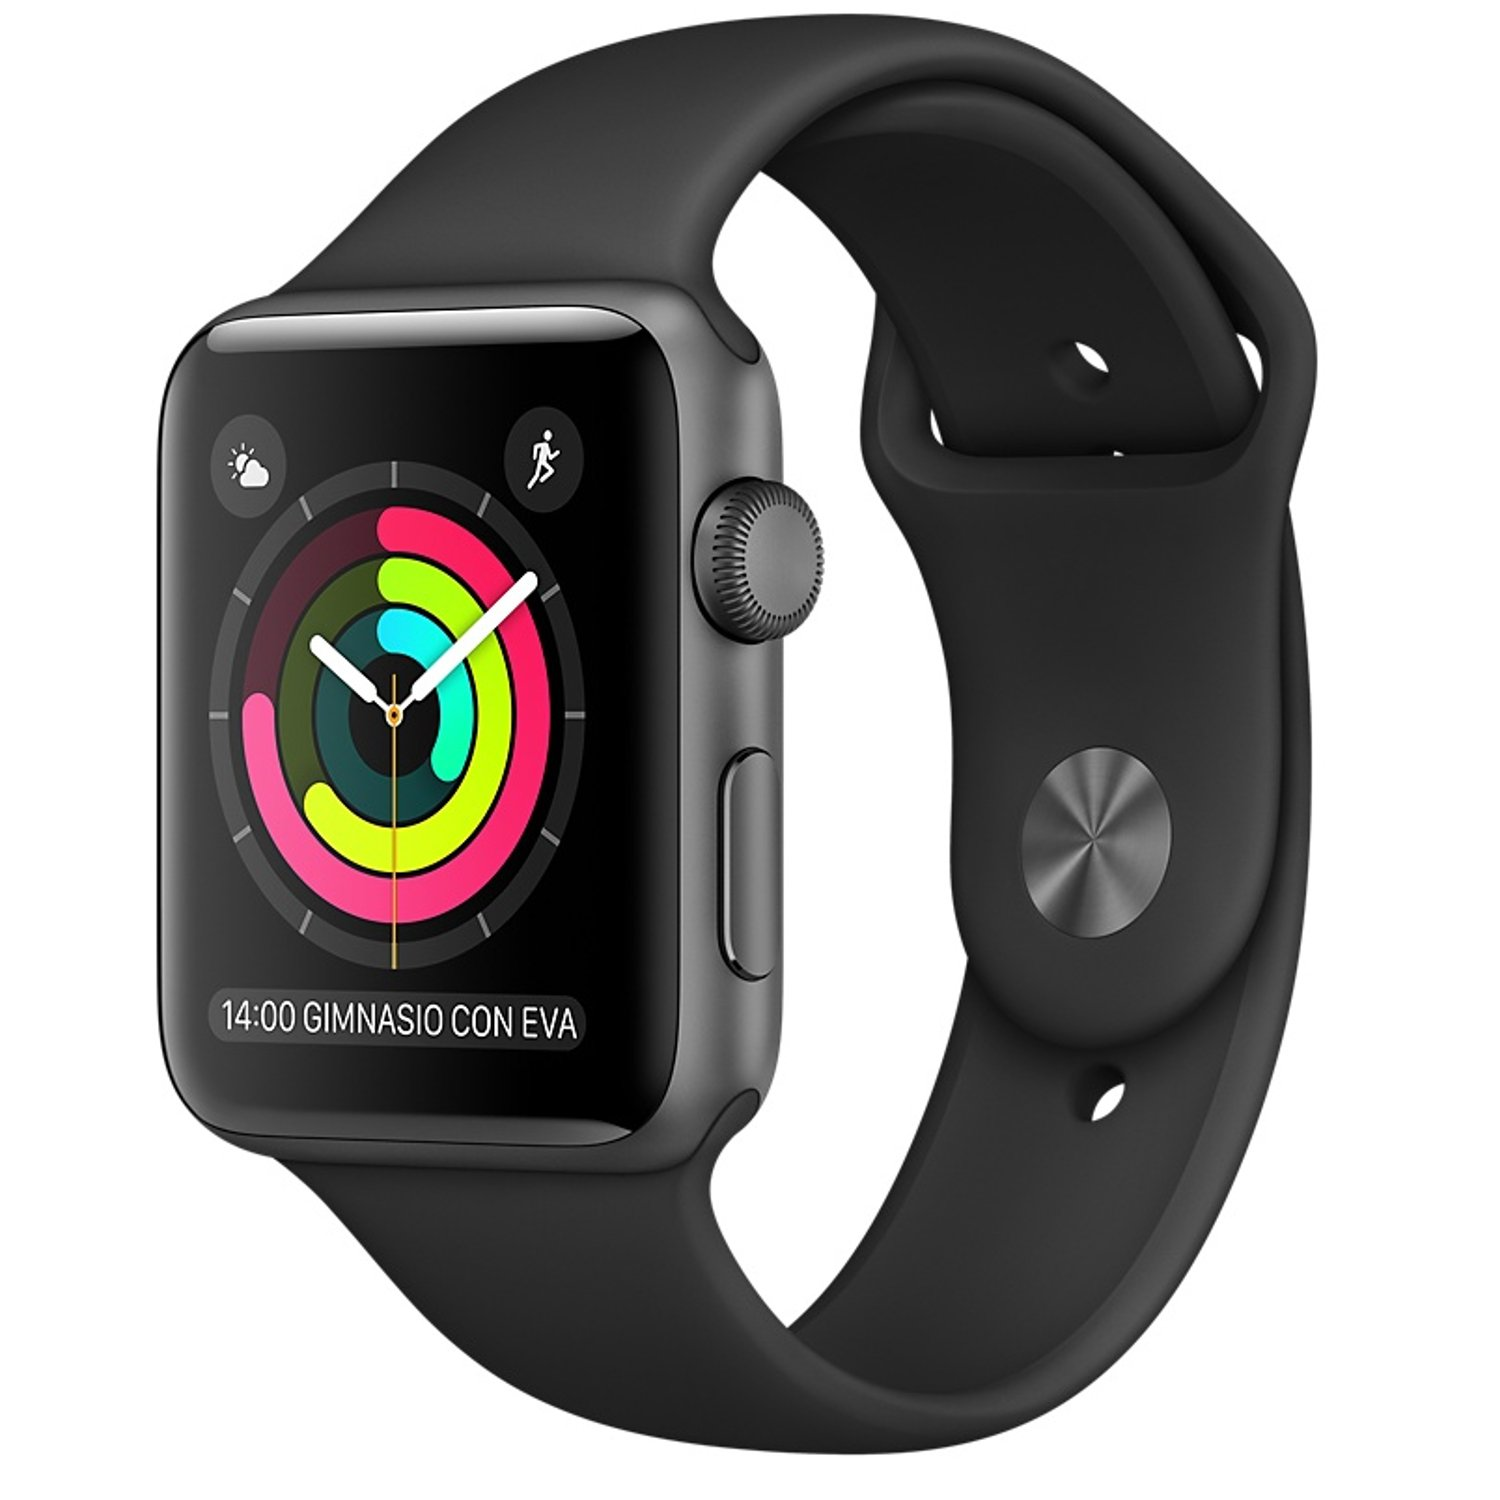 Apple Watch Series 1 - Reloj inteligente con pantalla OLED y ...